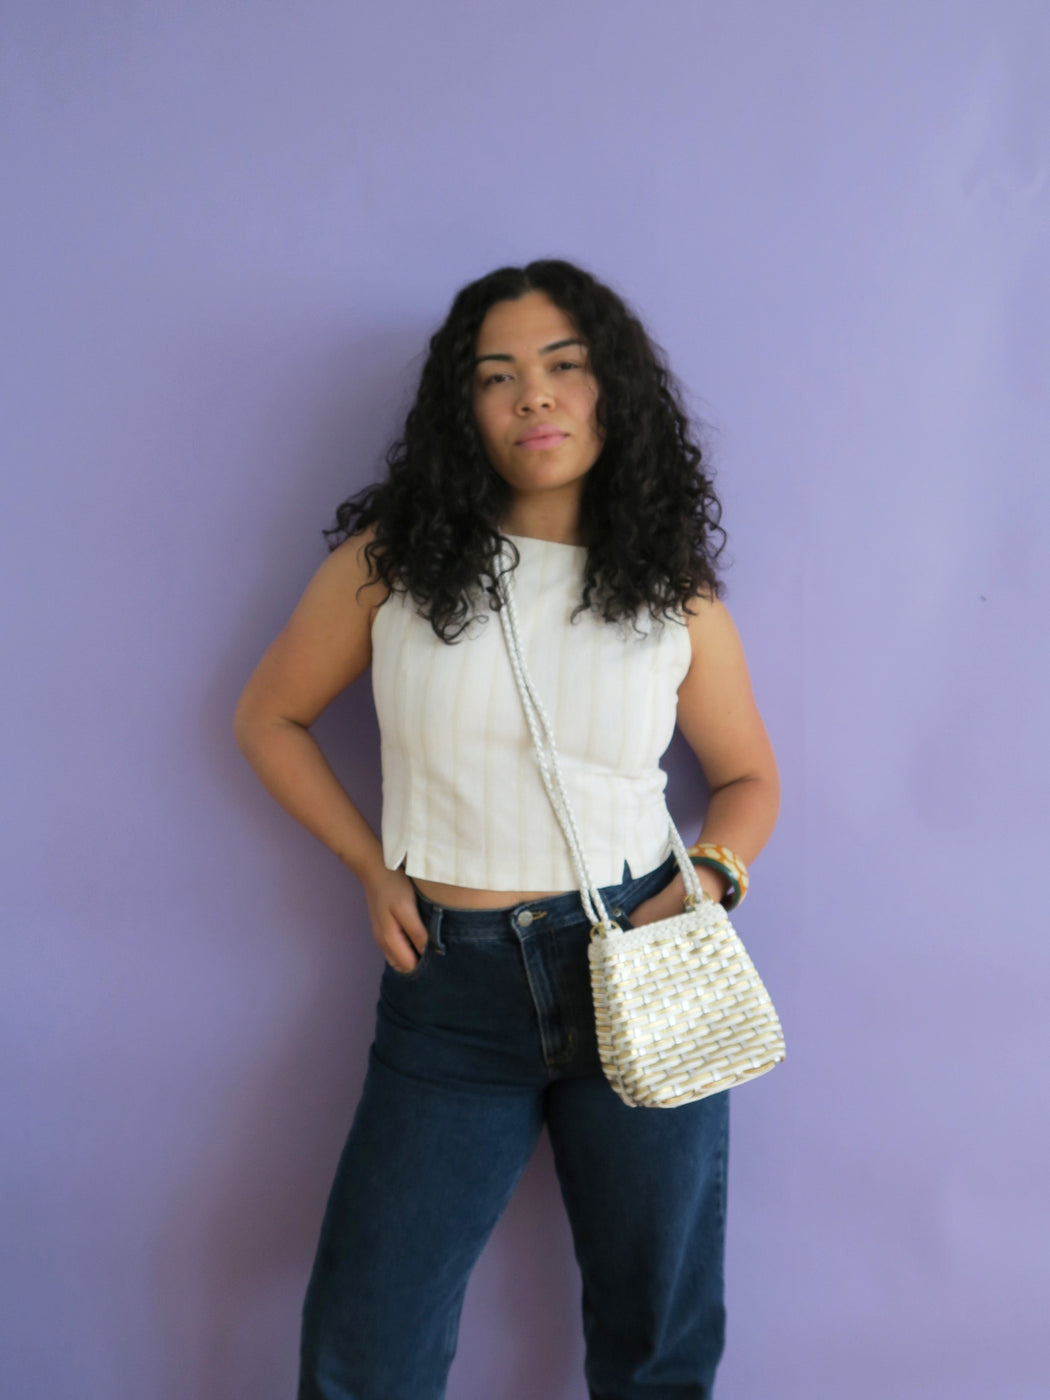 White Braided Leather Vintage Crossbody Bag